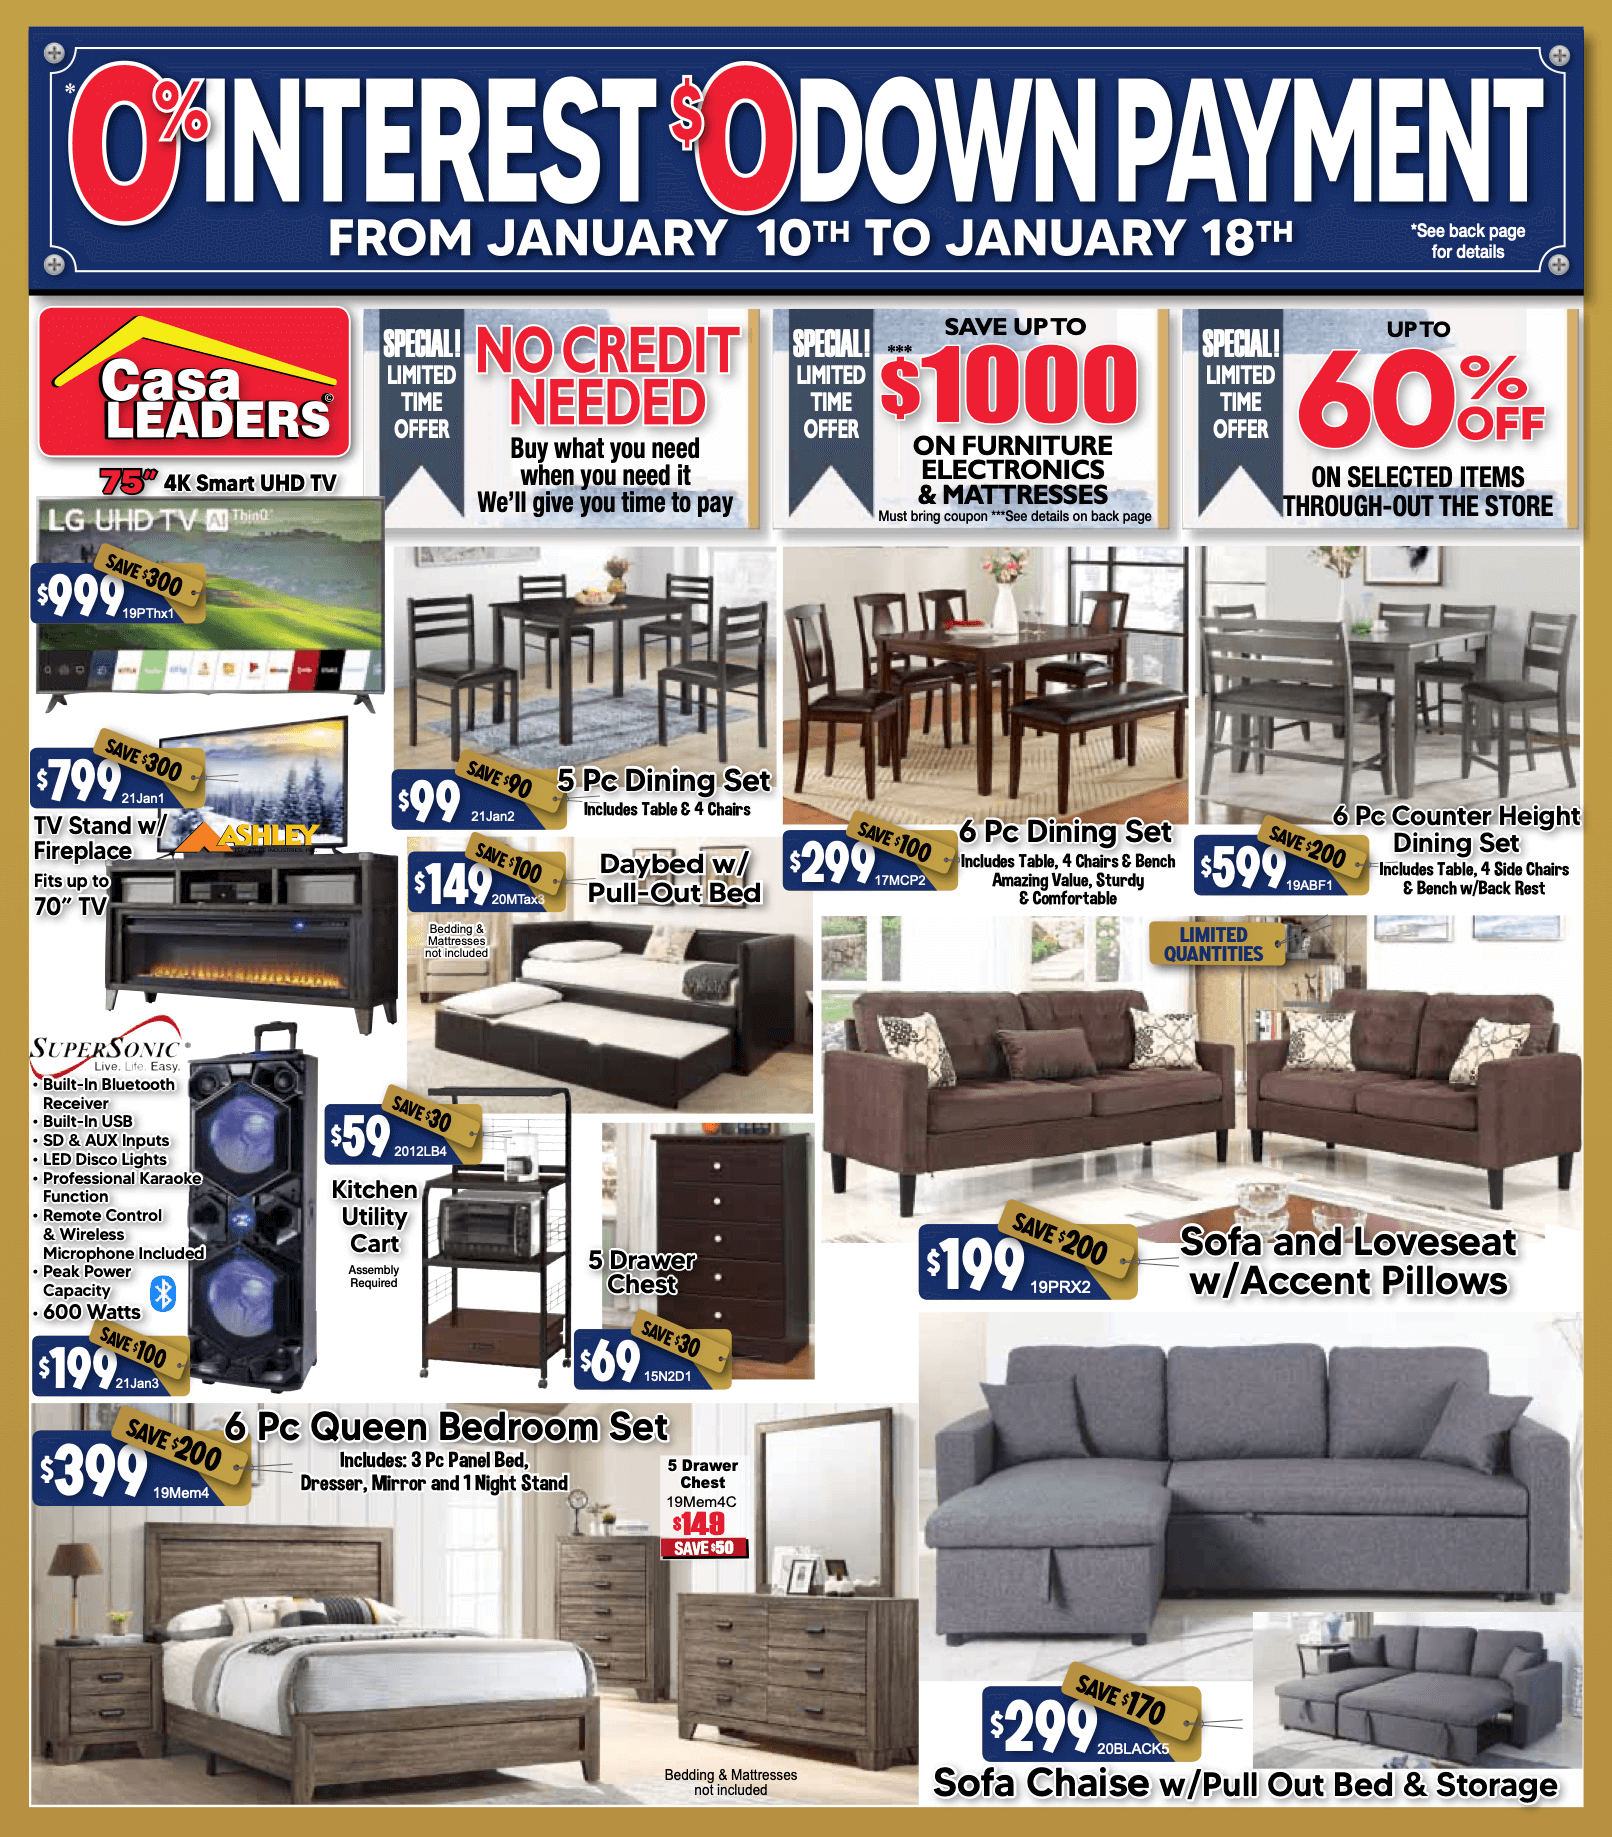 0% Interest and Downpayment Sale ad flyer